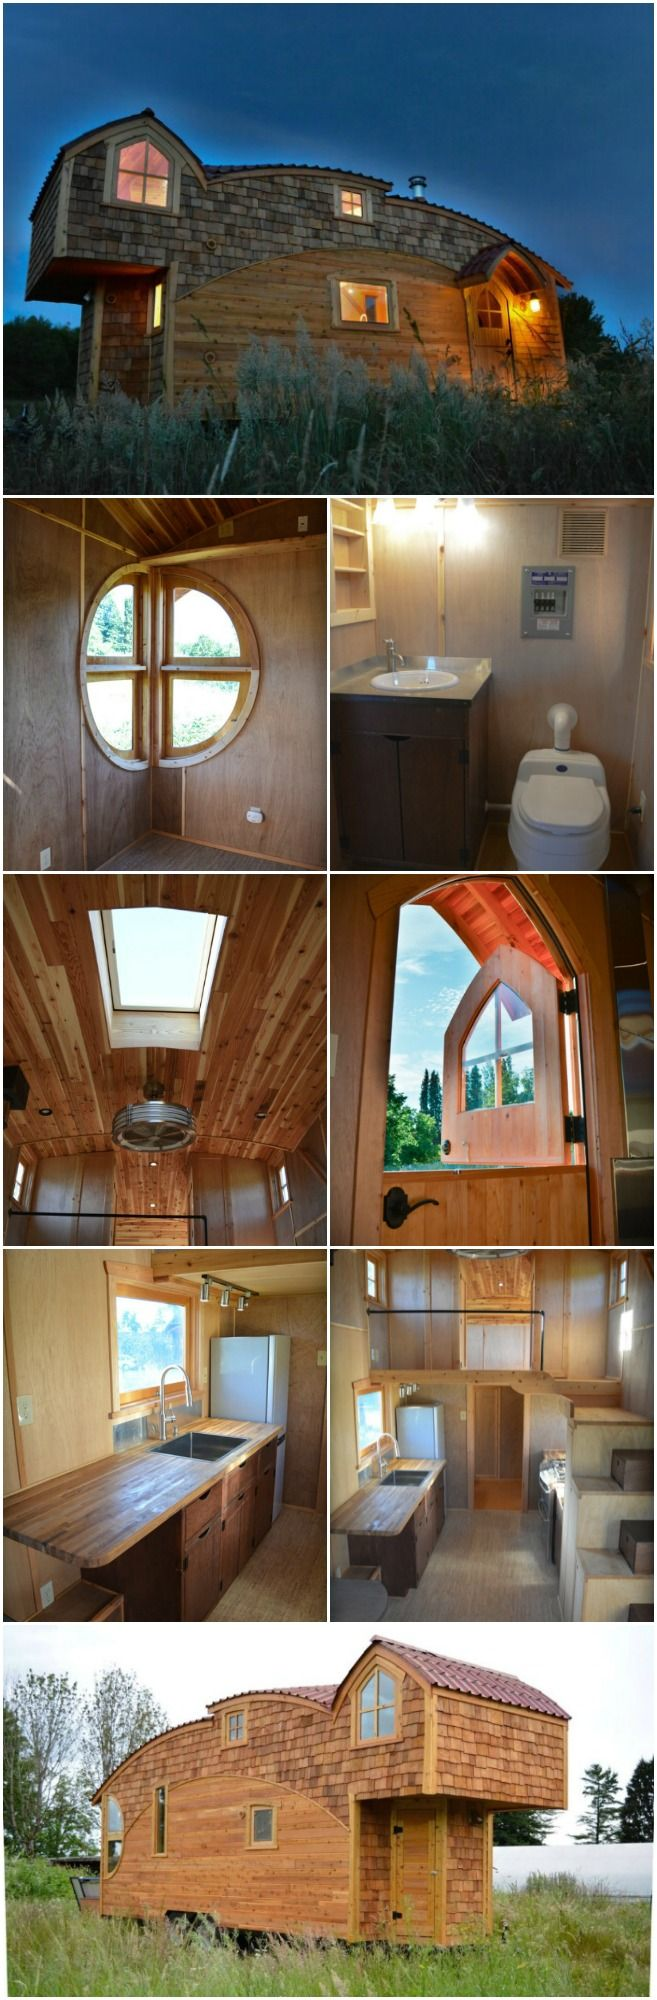 """A lot of tiny houses are amazing for reasons of simple practicality—they manage to make such effective use of space that we are blown away by their cleverness. But other tiny houses amaze us because they are architectural gems. One such house I want to share with you now is """"Moon Dragon,"""" a creation by tiny house architect Zyl Vardos."""